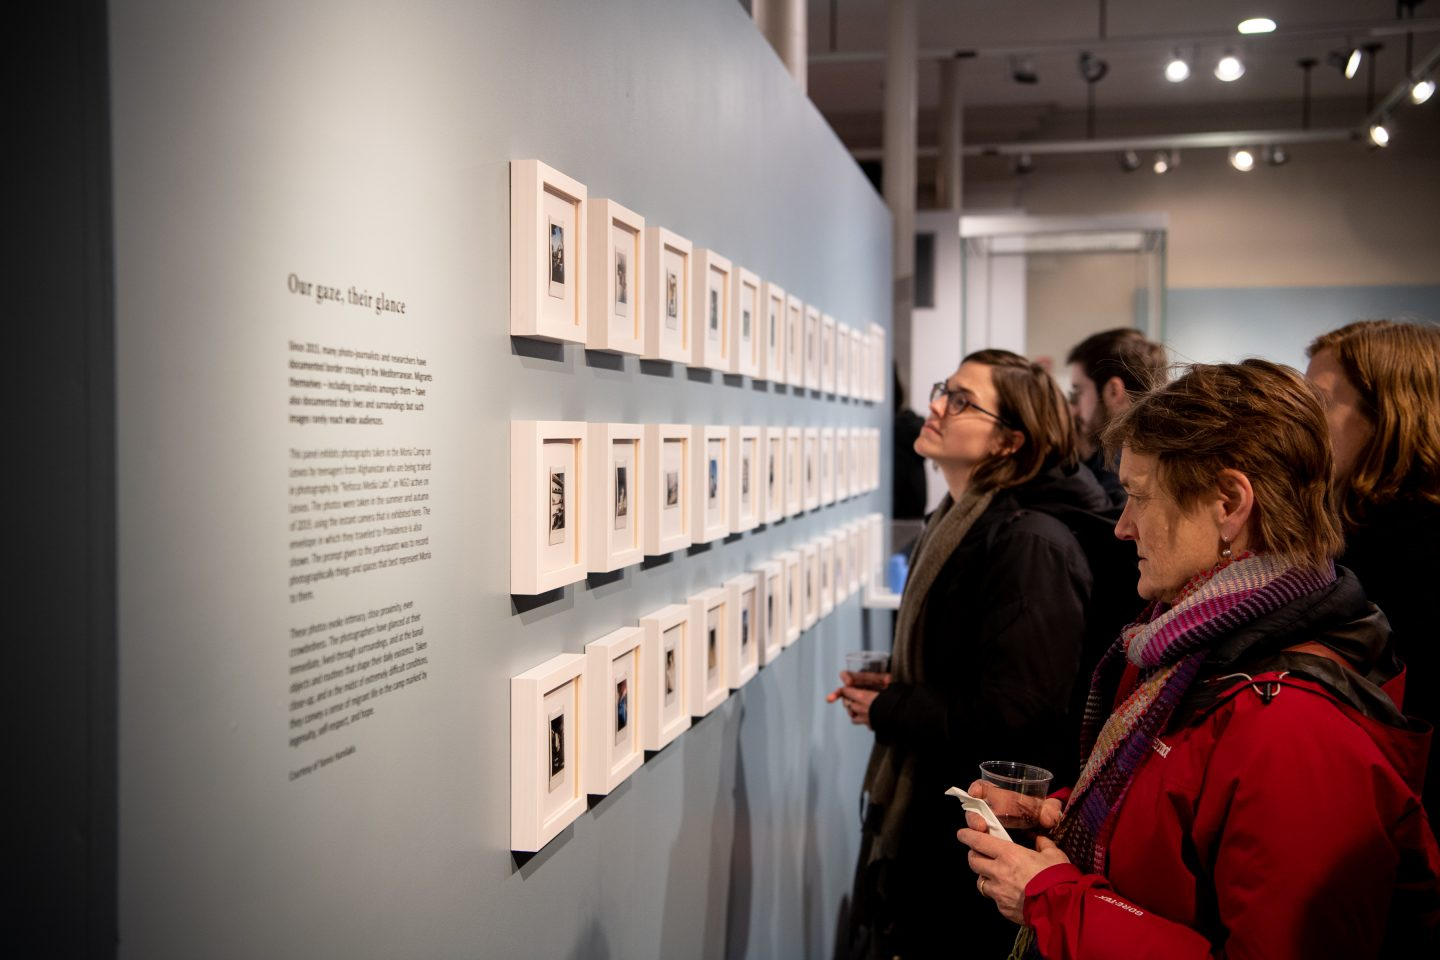 Photo of visitors to the exhibit looking at the wall of framed polaroids.